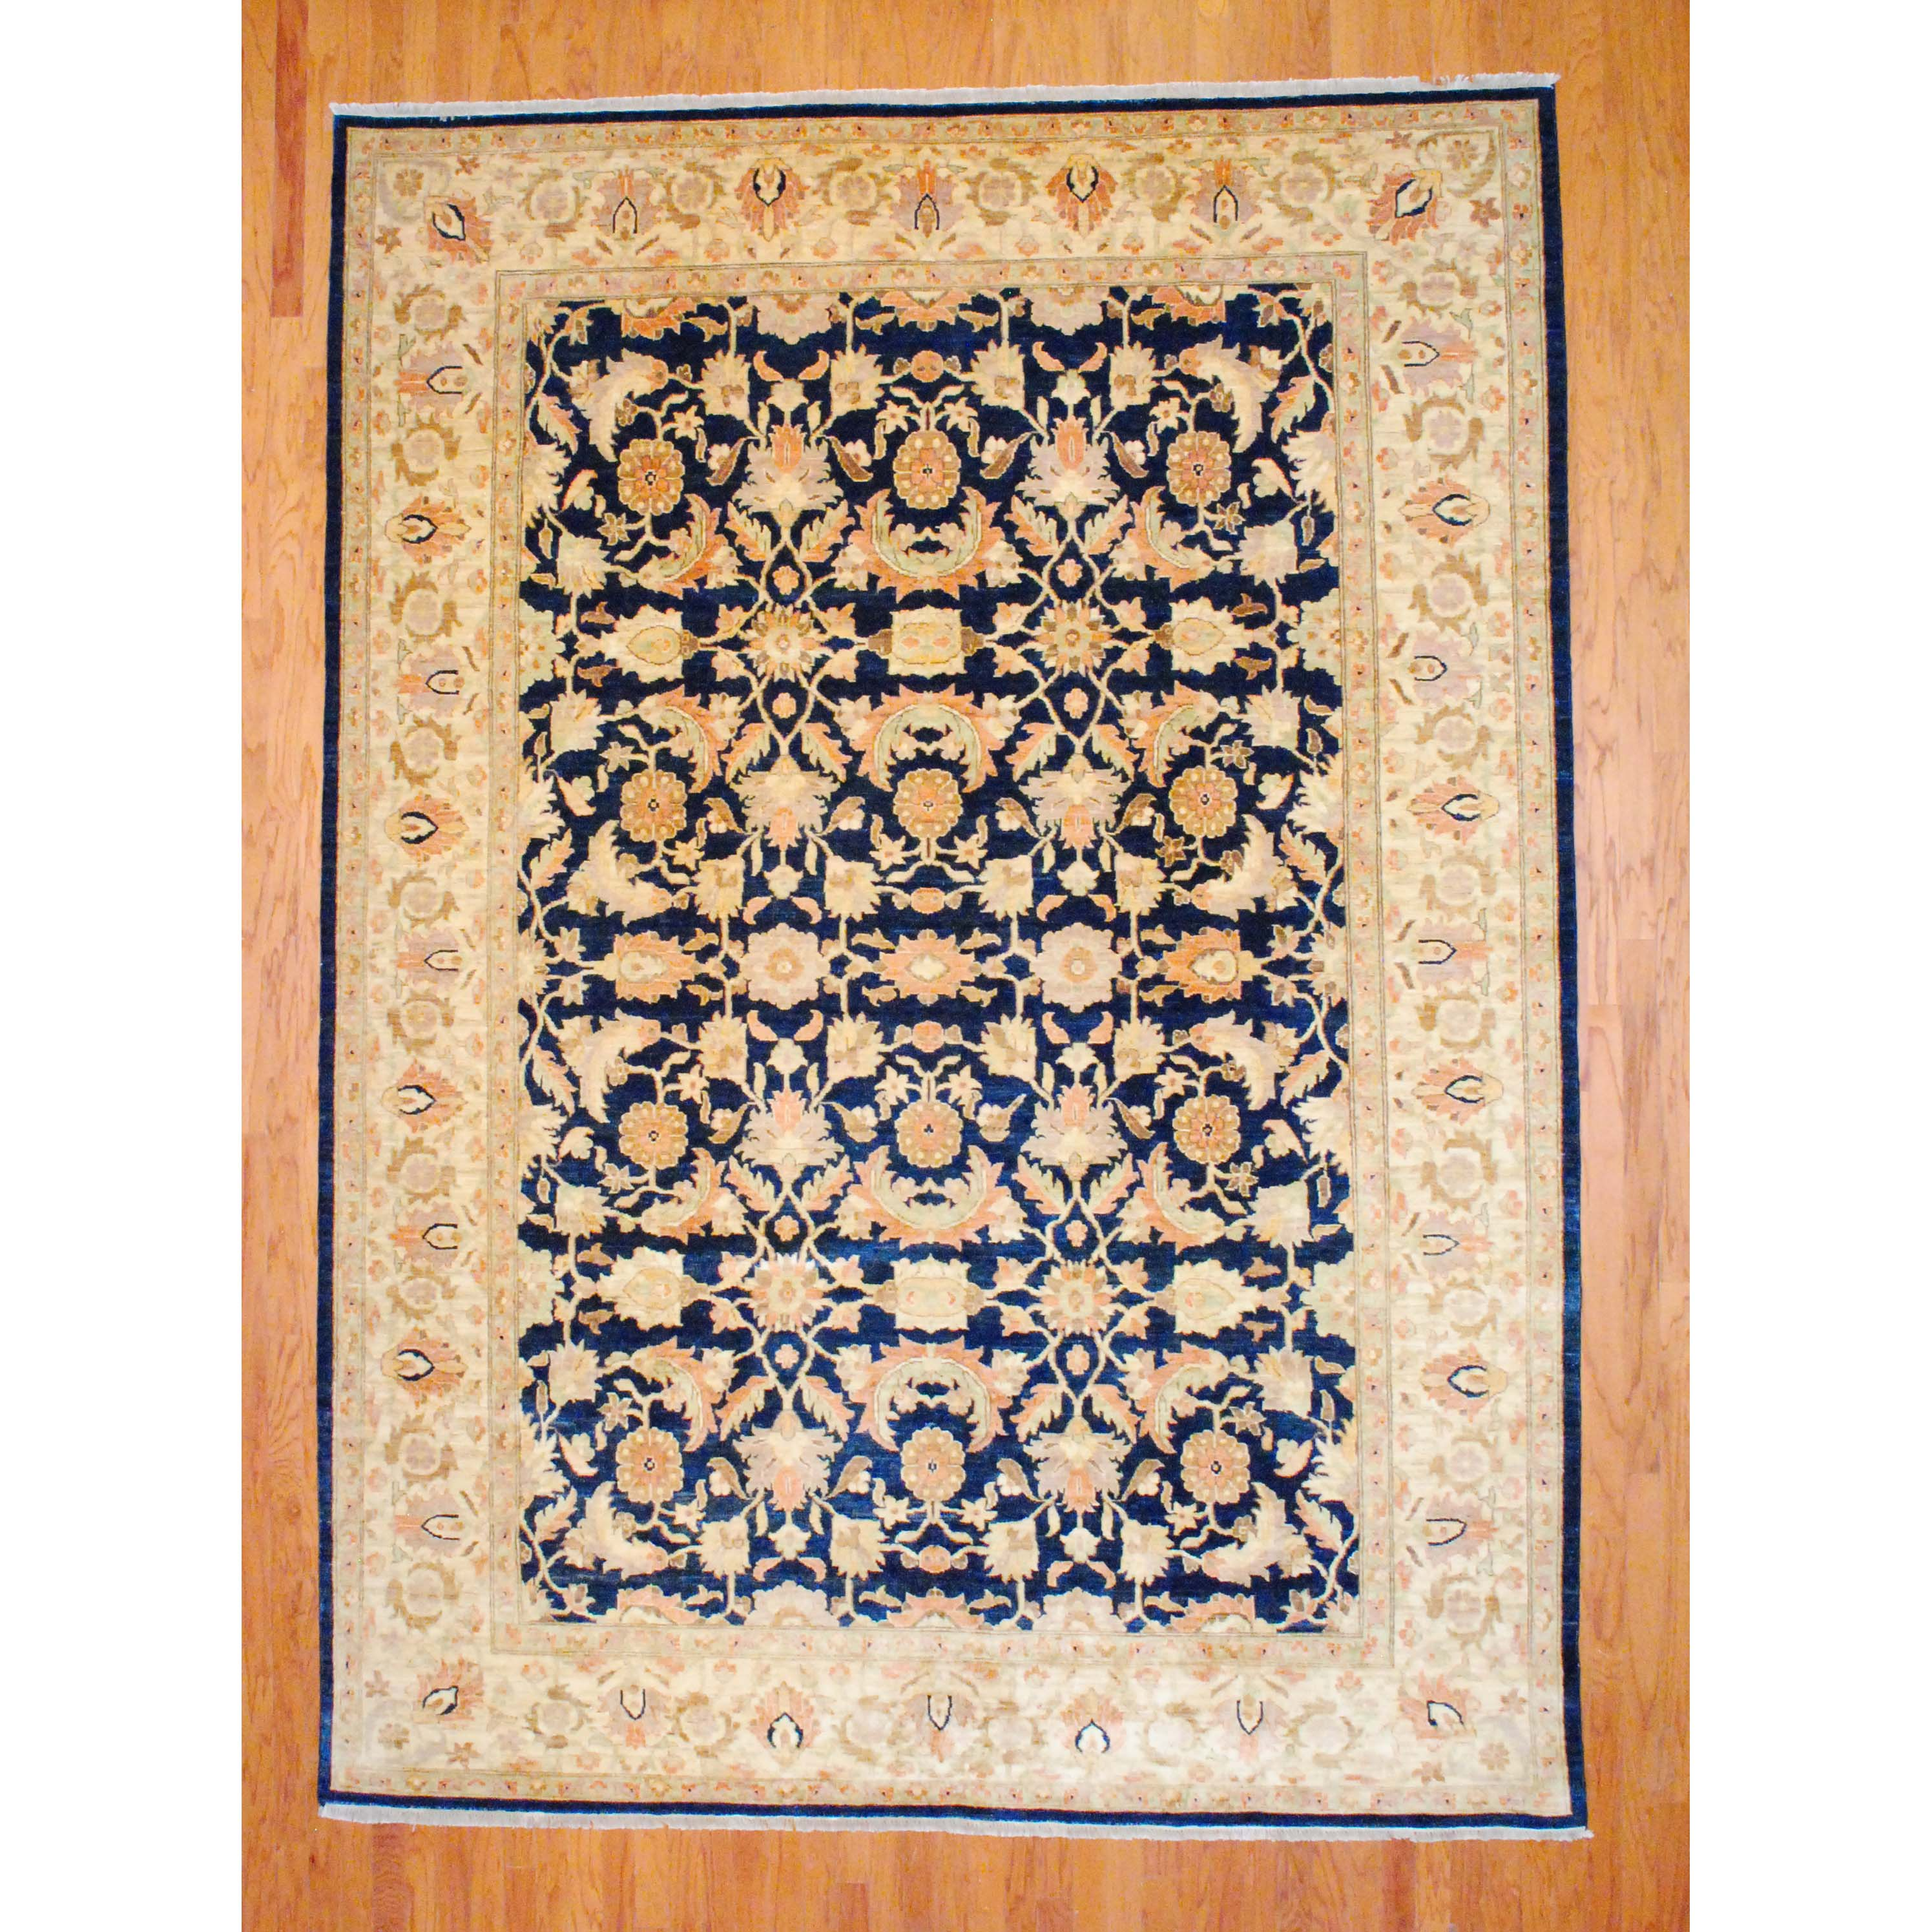 Afghan Hand-knotted Vegetable Dye Navy/ Ivory Wool Rug (9'3 x 13')